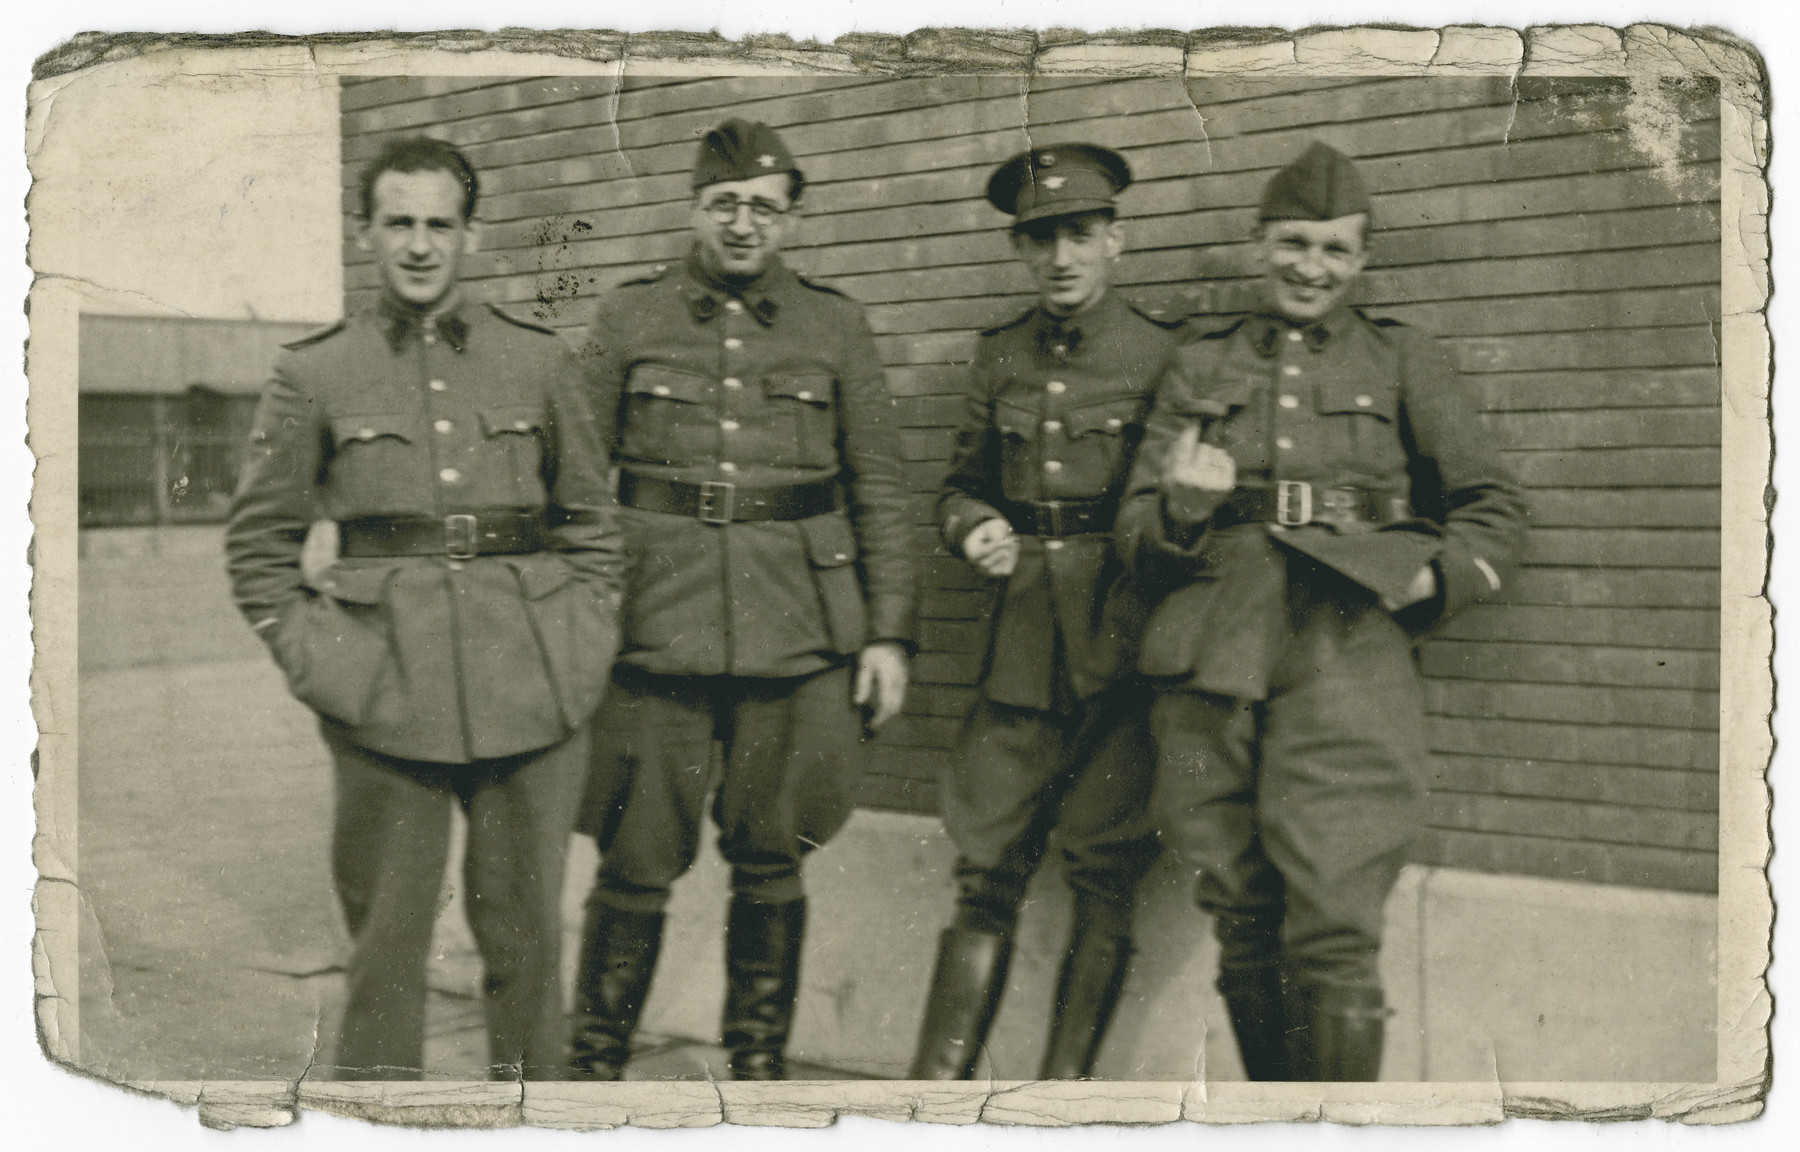 Group portrait of four POWs in Stalag 10 C.  Leopold Guttman is pictured second from the left.